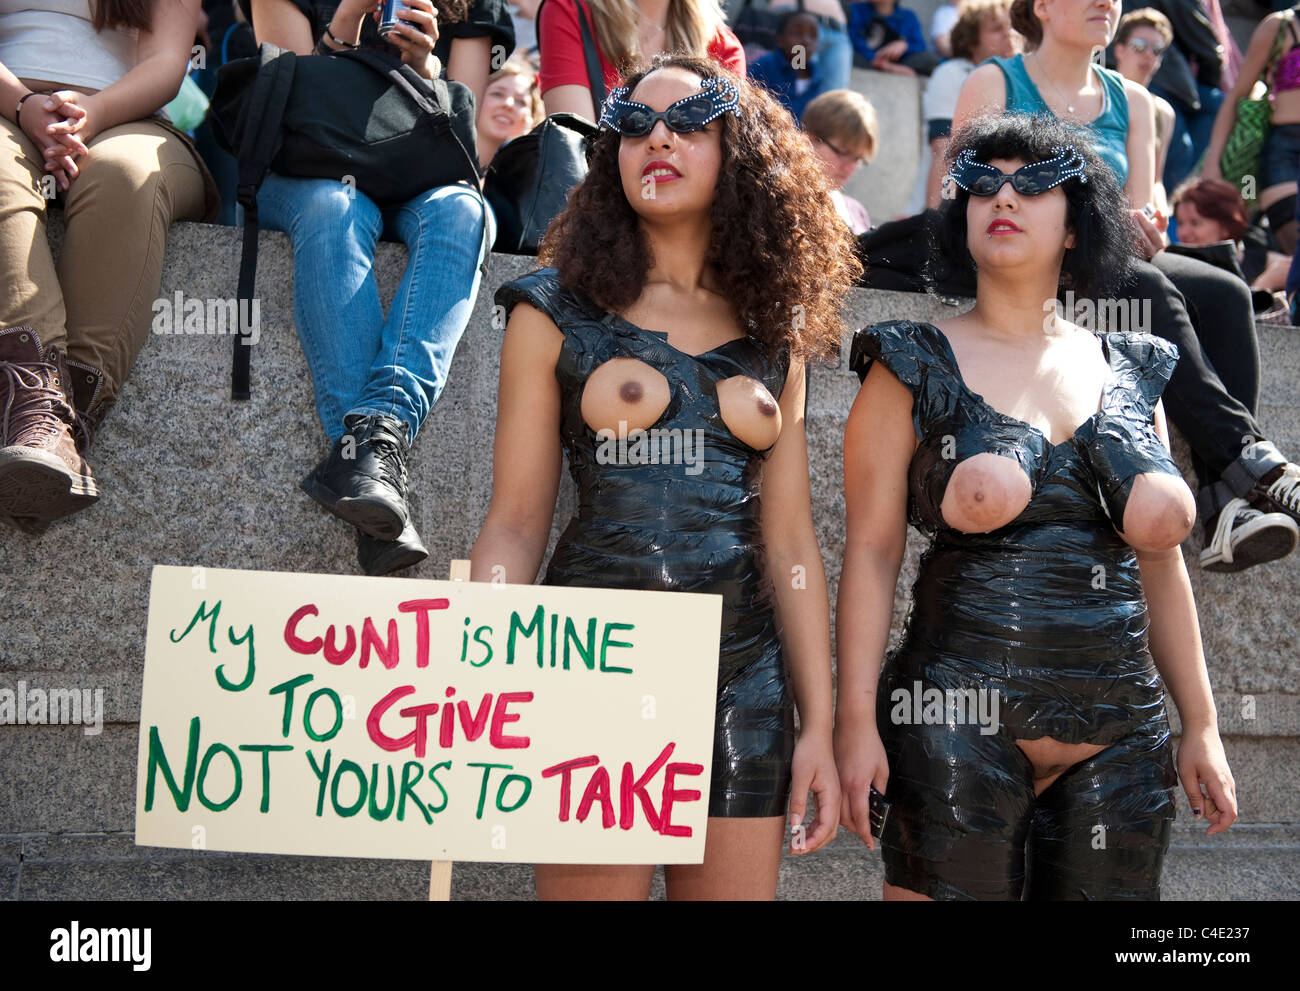 http://c8.alamy.com/comp/C4E237/slut-walk-demo-london-uk-demo-against-rape-crime-in-london-C4E237.jpg